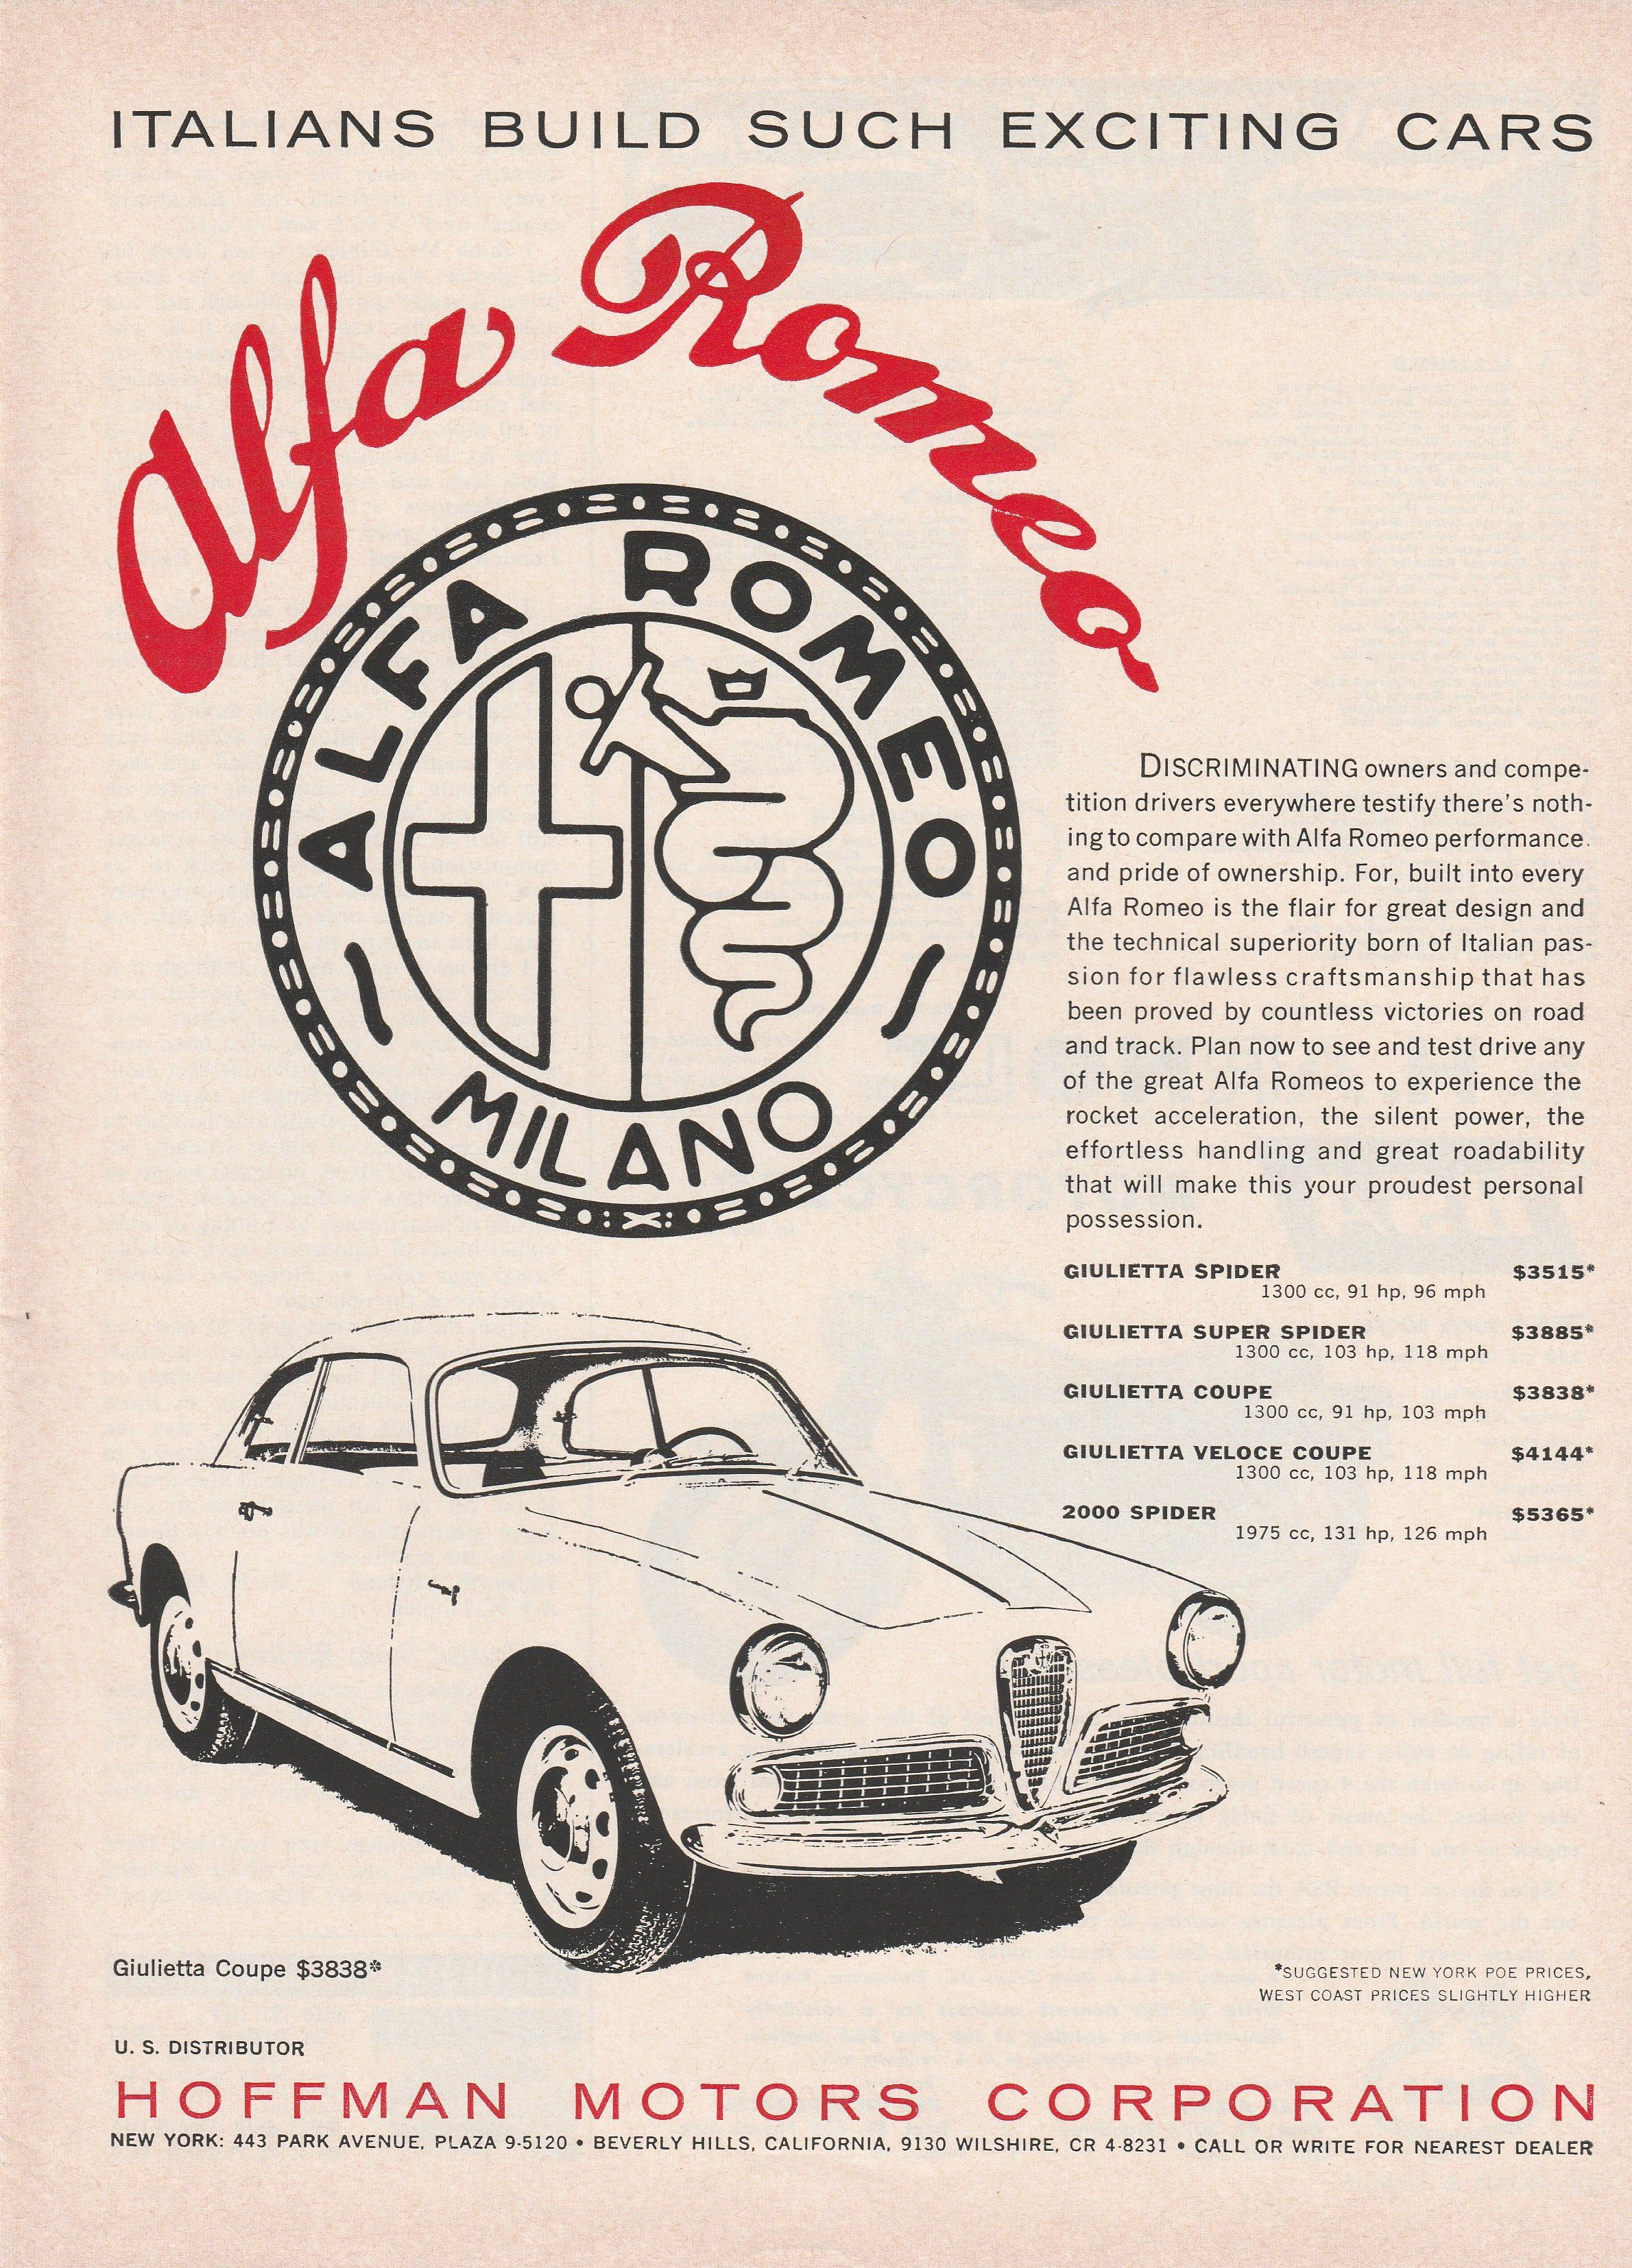 "1959 60 Alfa Romeo ad ""Italians build such exciting cars"